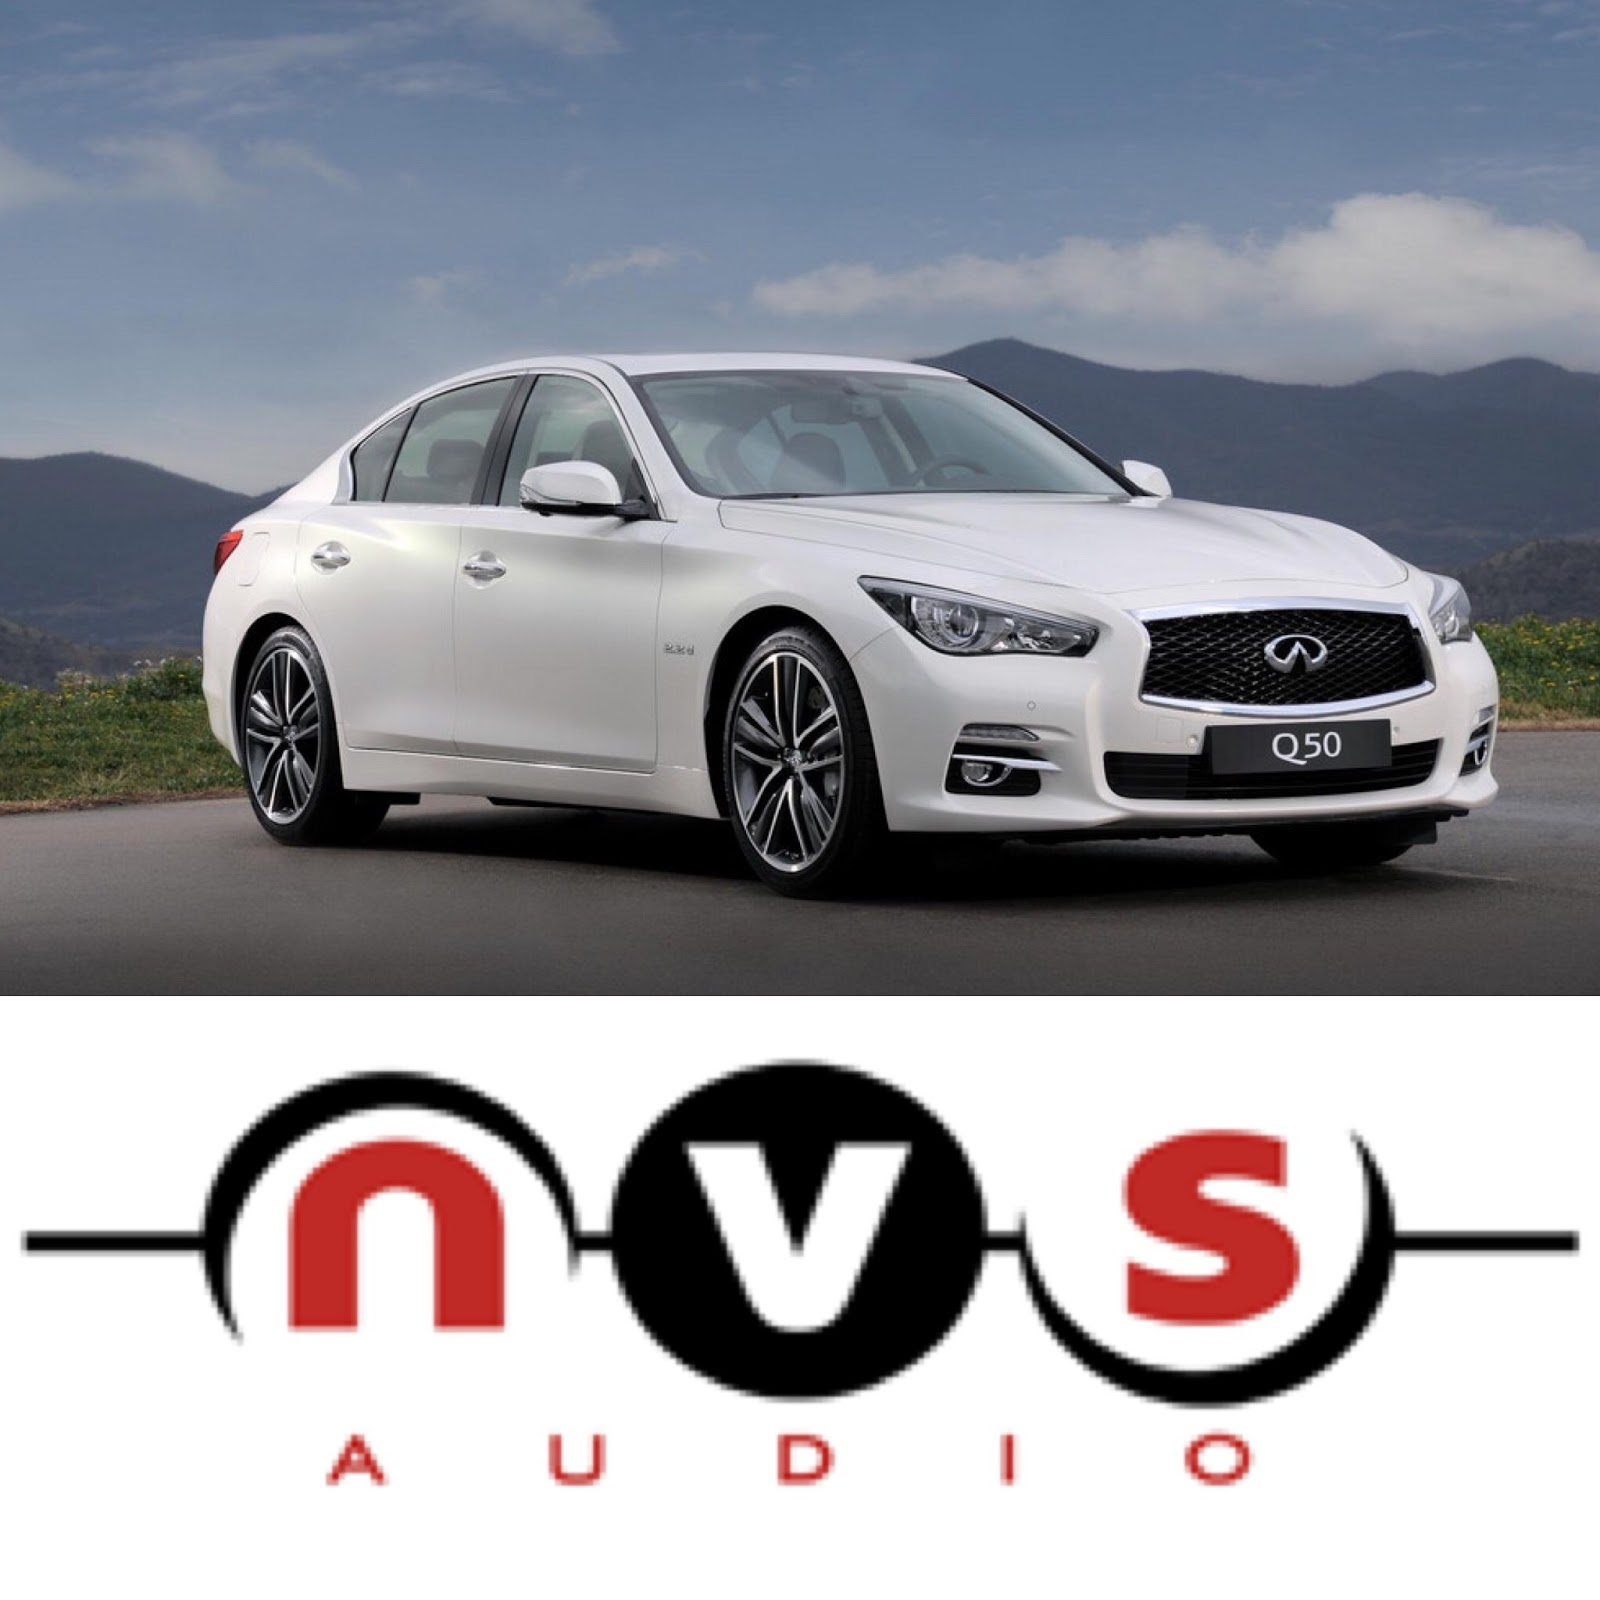 Nvs Audio Infiniti Q50 Alarm Remote Start Upgrade With Smart G37 Phone And Apple Watch App By